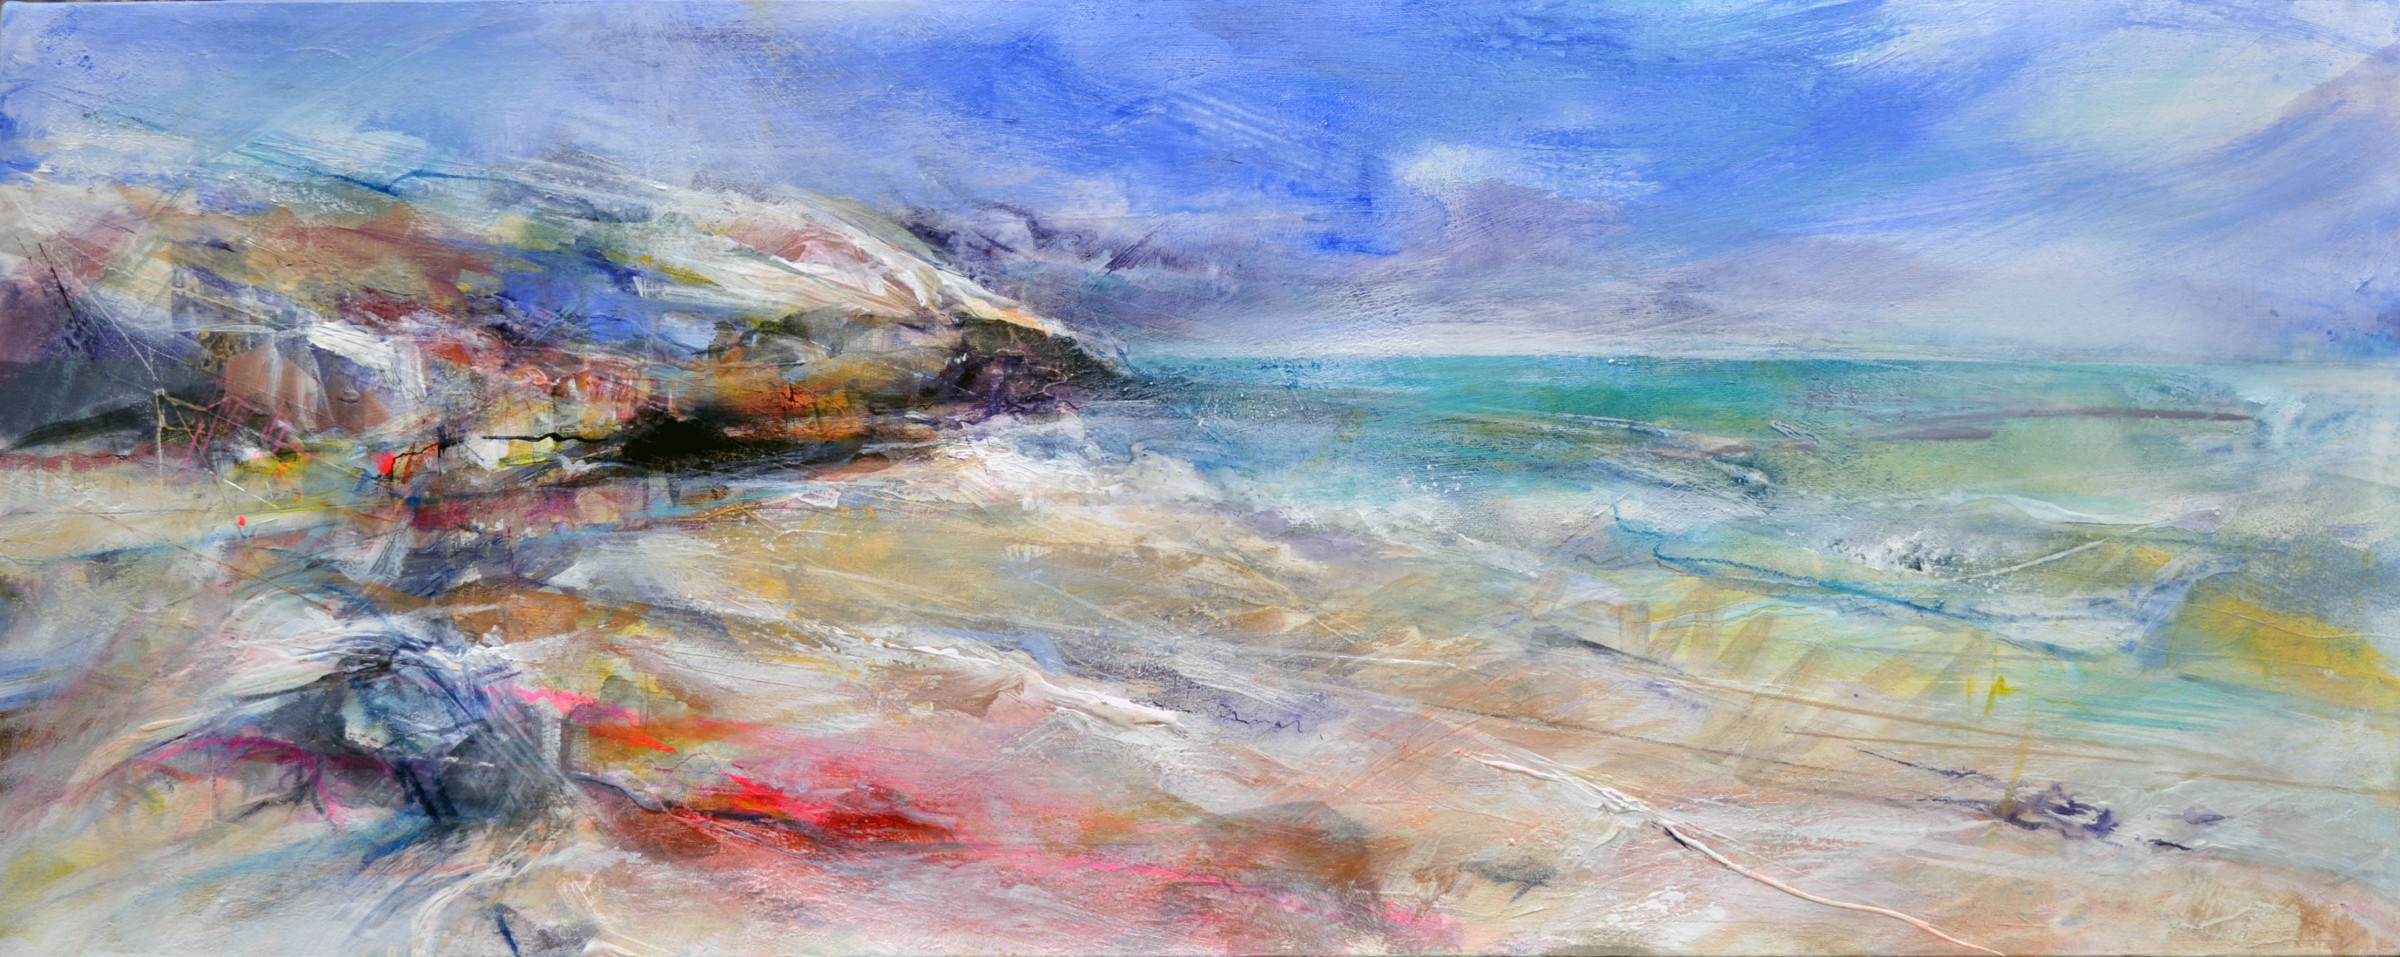 <span class=&#34;link fancybox-details-link&#34;><a href=&#34;/artists/90-freya-horsley/works/4166-freya-horsley-staying-out-2017/&#34;>View Detail Page</a></span><div class=&#34;artist&#34;><strong>Freya Horsley</strong></div> <div class=&#34;title&#34;><em>Staying Out</em>, 2017</div> <div class=&#34;signed_and_dated&#34;>signed on reverse</div> <div class=&#34;medium&#34;>mixed media on canvas</div> <div class=&#34;dimensions&#34;>40 x 100 cm<br /> 15 3/4 x 39 3/8 inches</div><div class=&#34;copyright_line&#34;>OwnArt: £ 88 x 10 Months, 0% APR</div>